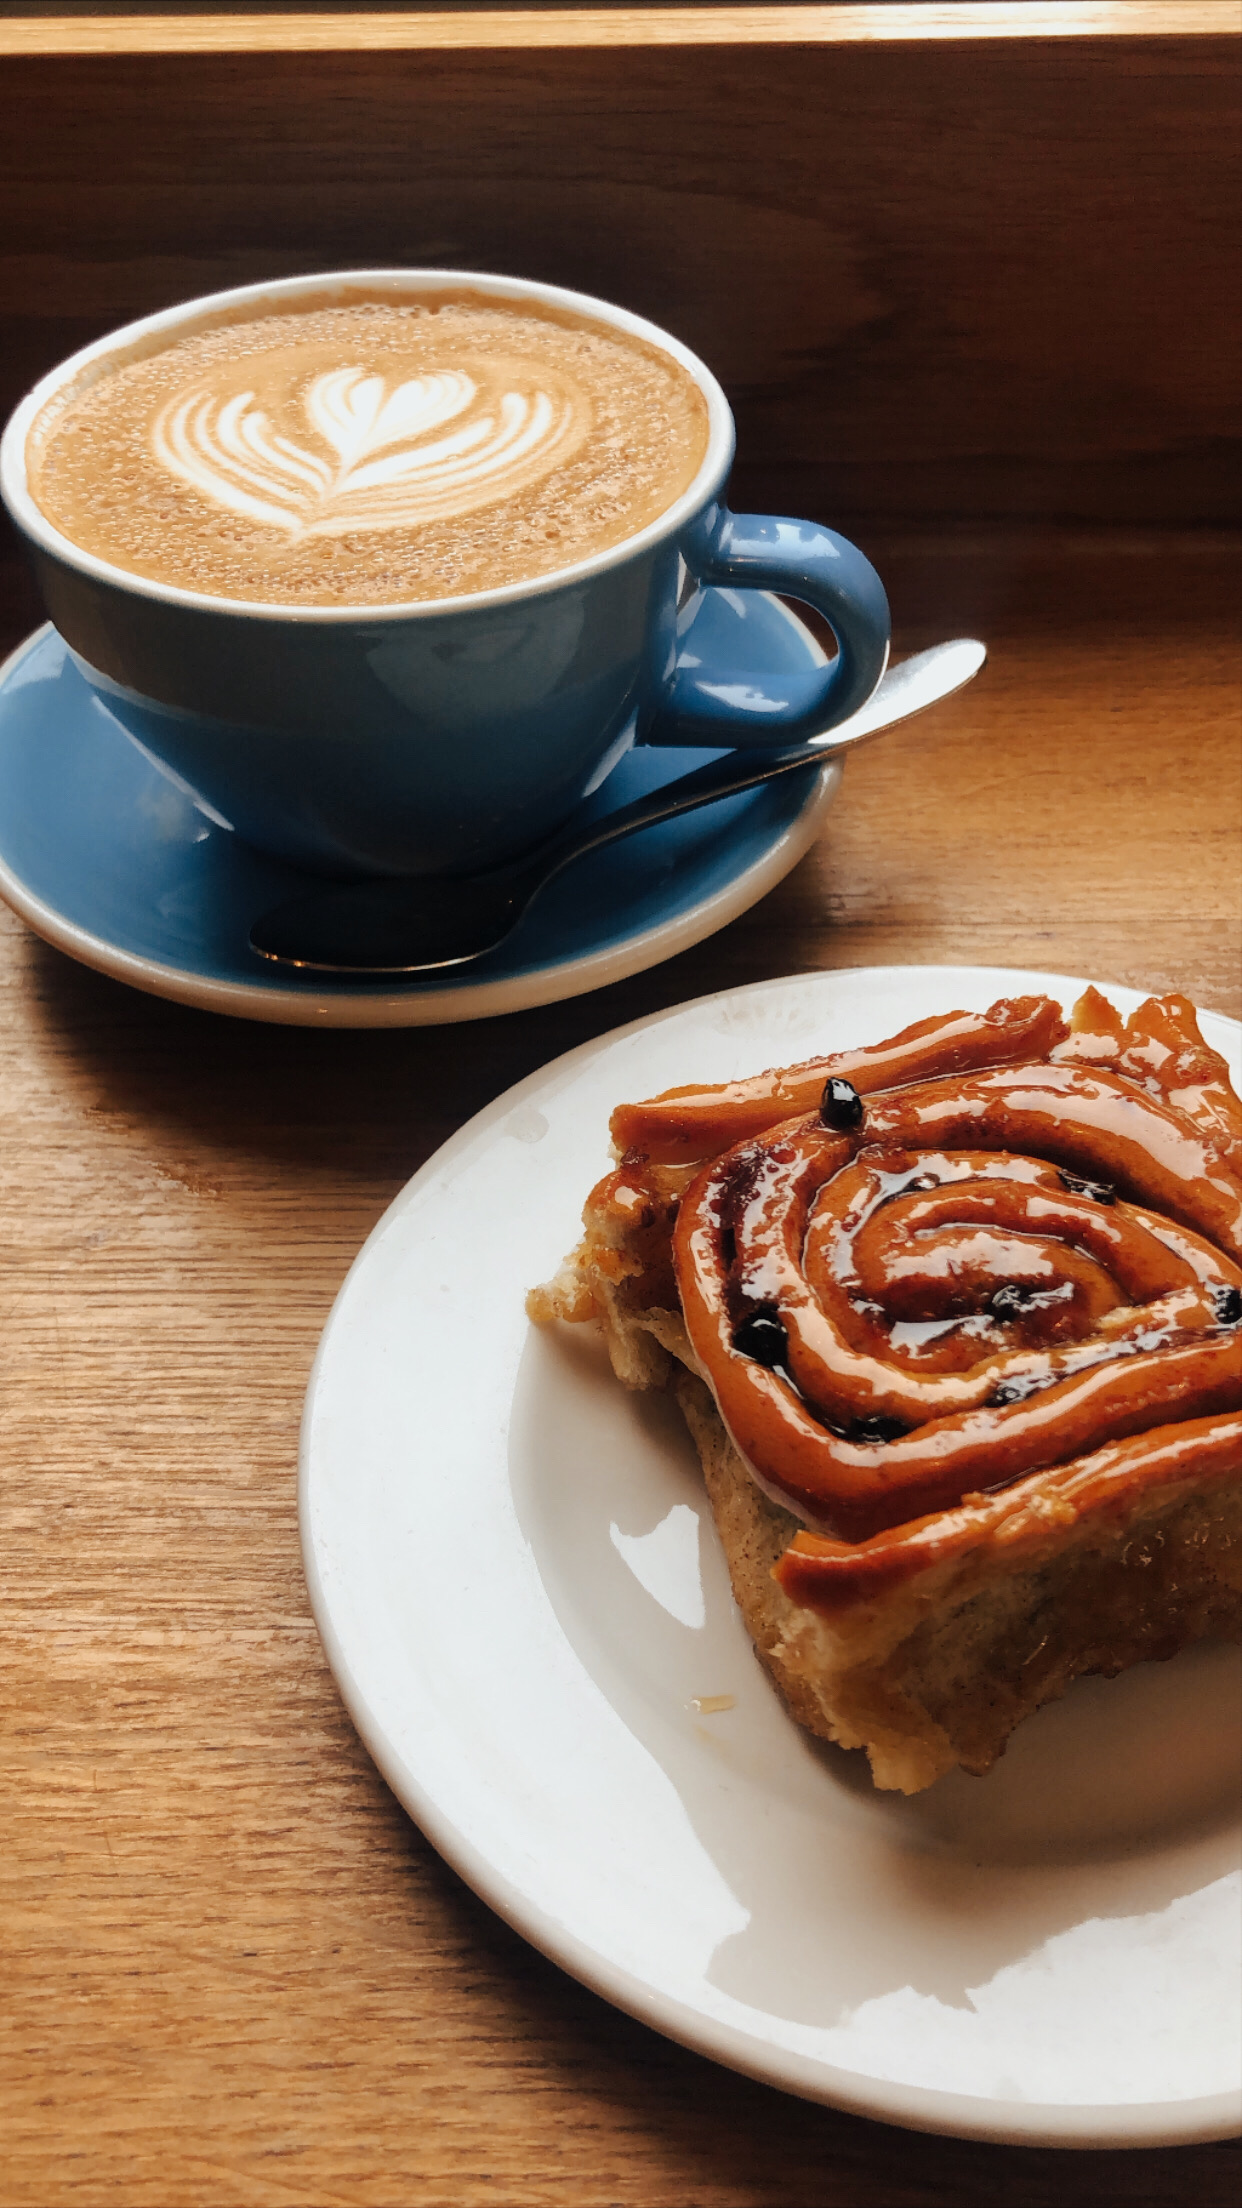 Chelsea Bun and Latte from Fitzbillies!